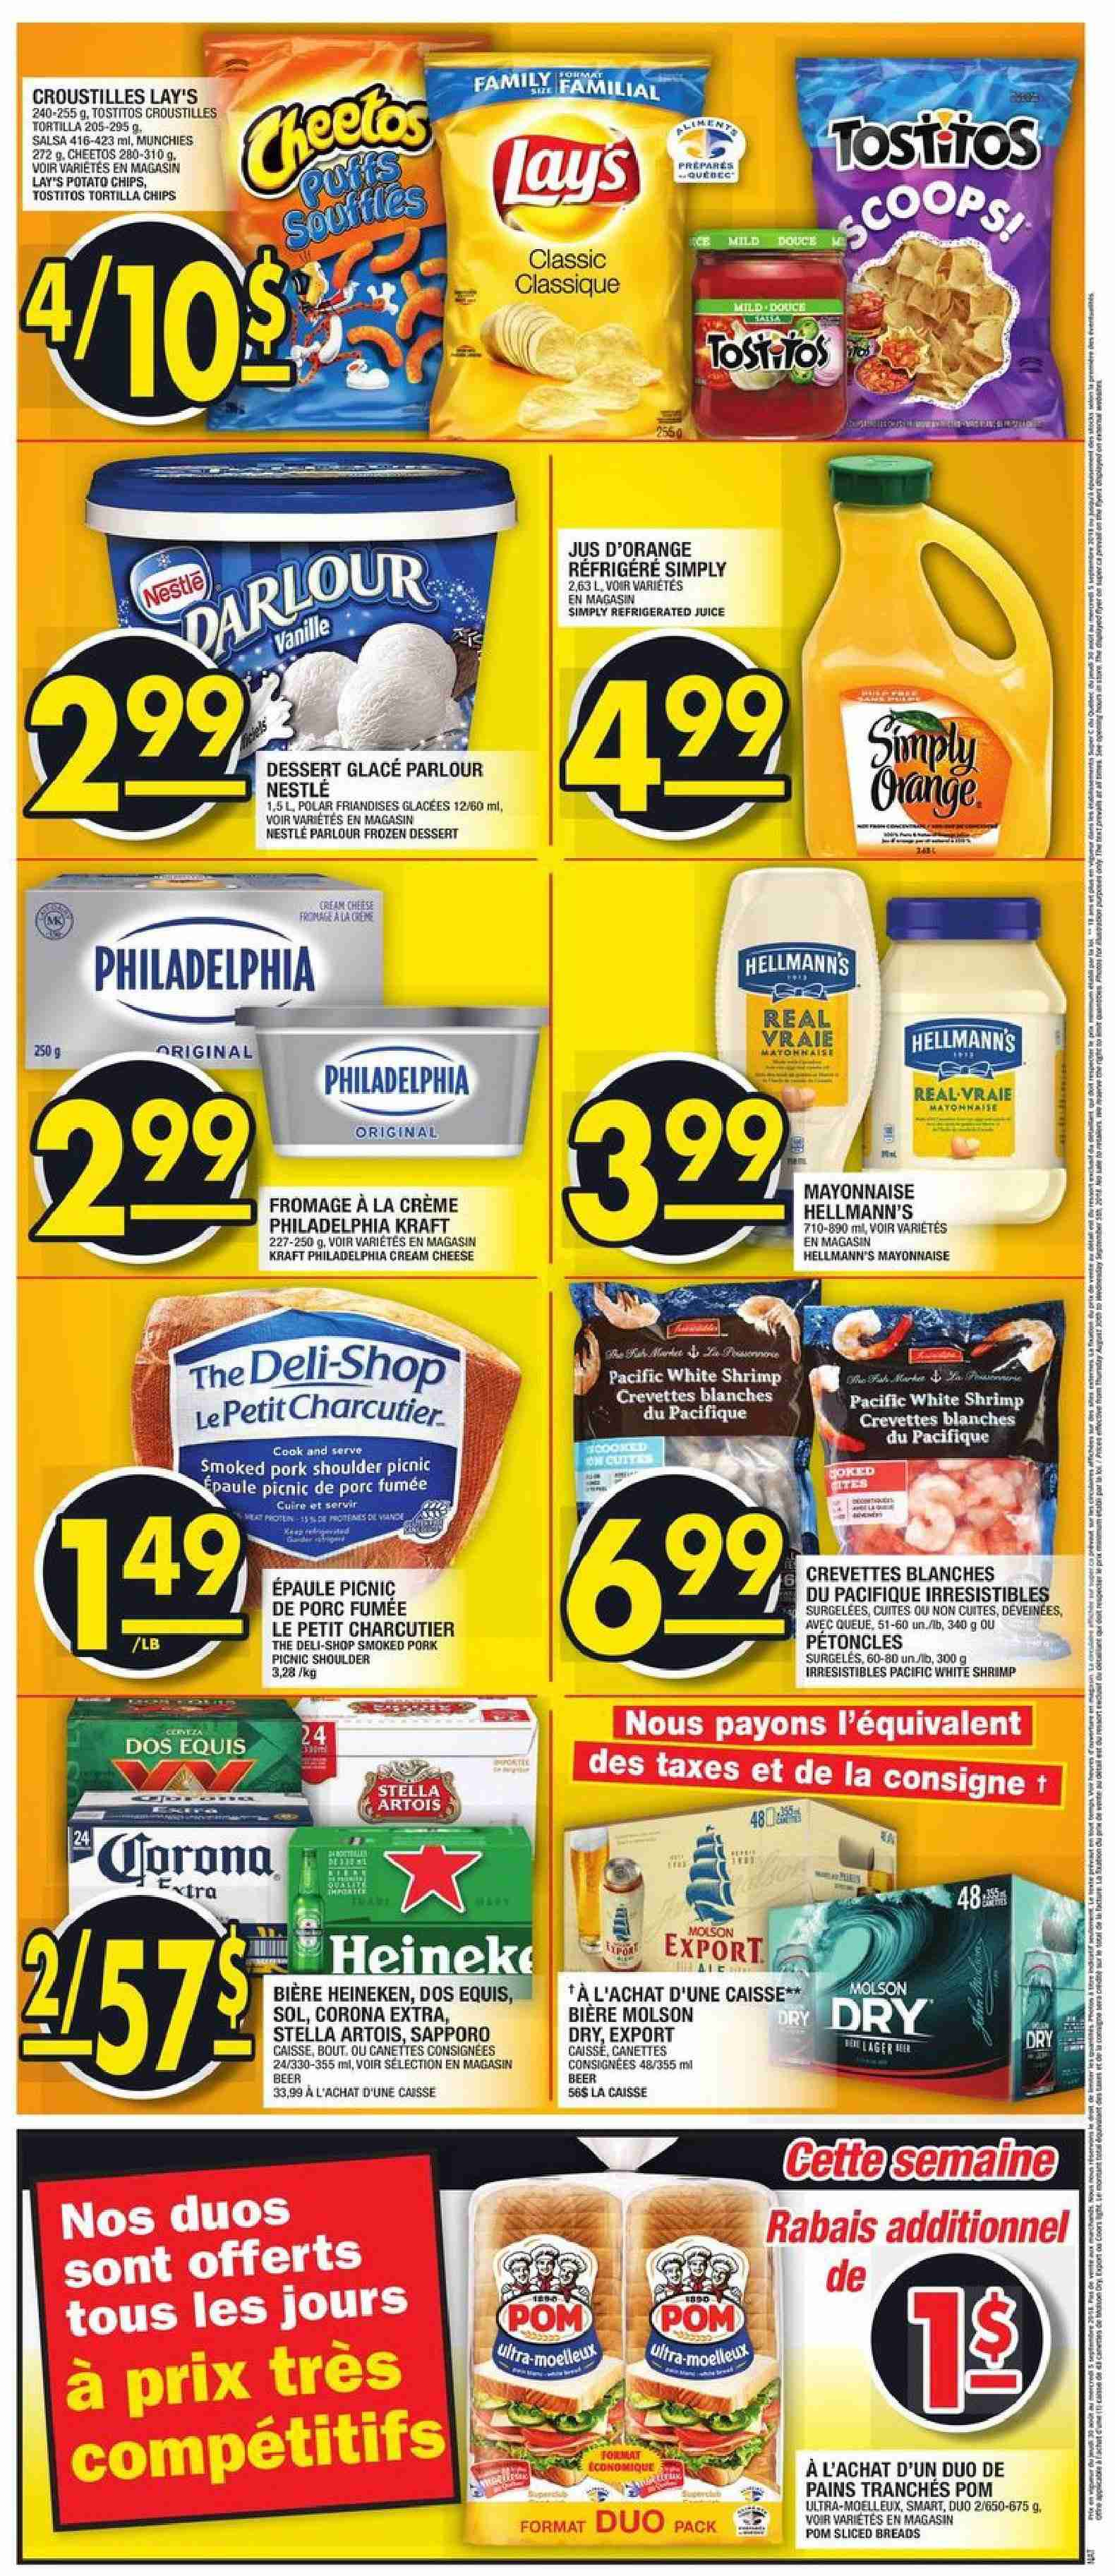 Super C Flyer - August 30, 2018 - September 05, 2018 - Sales products - beer, corona extra, cream, cream cheese, crème, frozen, mayonnaise, nestlé, shrimp, stella artois, tortilla chips, philadelphia, pork meat, pork shoulder, potato chips, cheetos, chips, cheese, juice, dessert, salsa, lay's, porc, bière, crevette, fromage, glace, tortilla, jus d'orange, jus. Page 2.